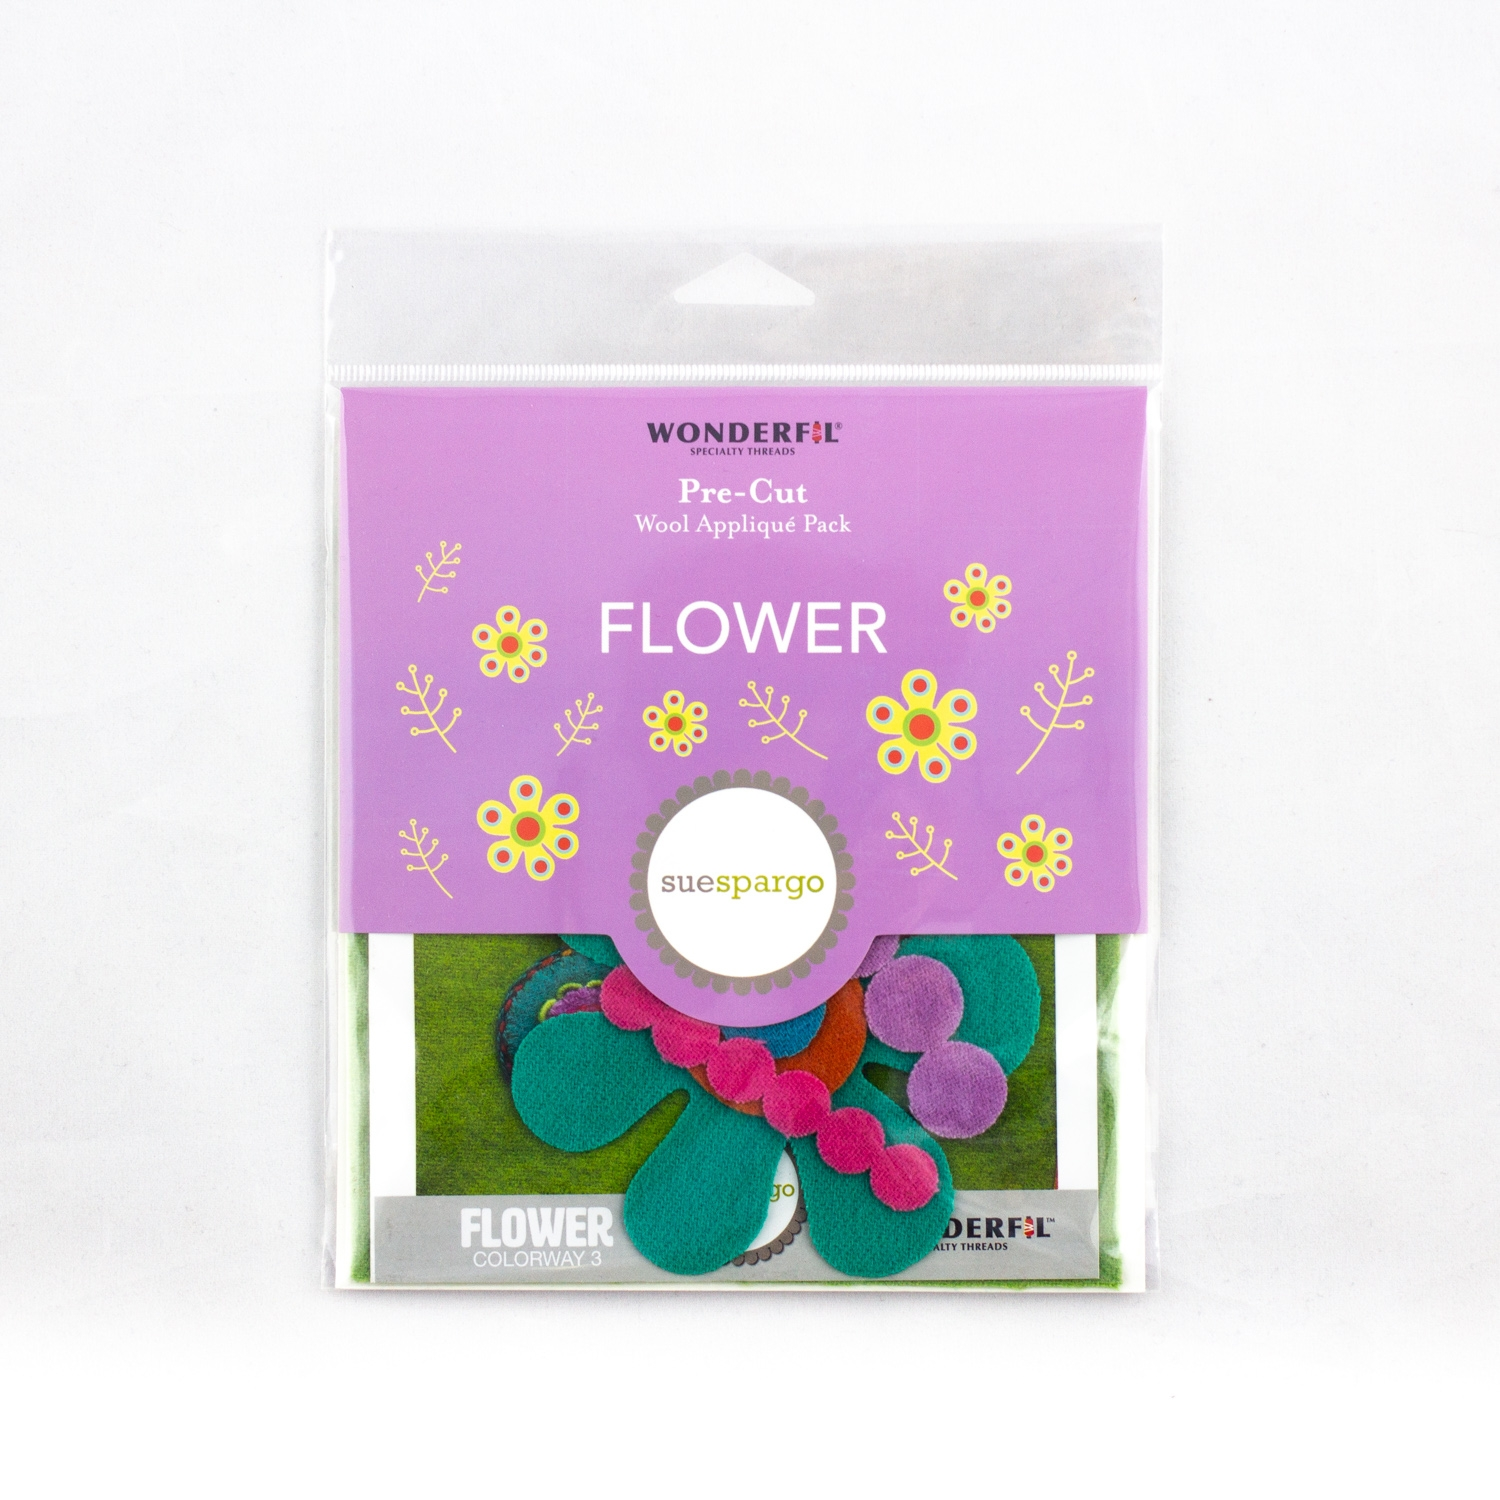 Flower Block Kit Colorway 3 by Sue Spargo